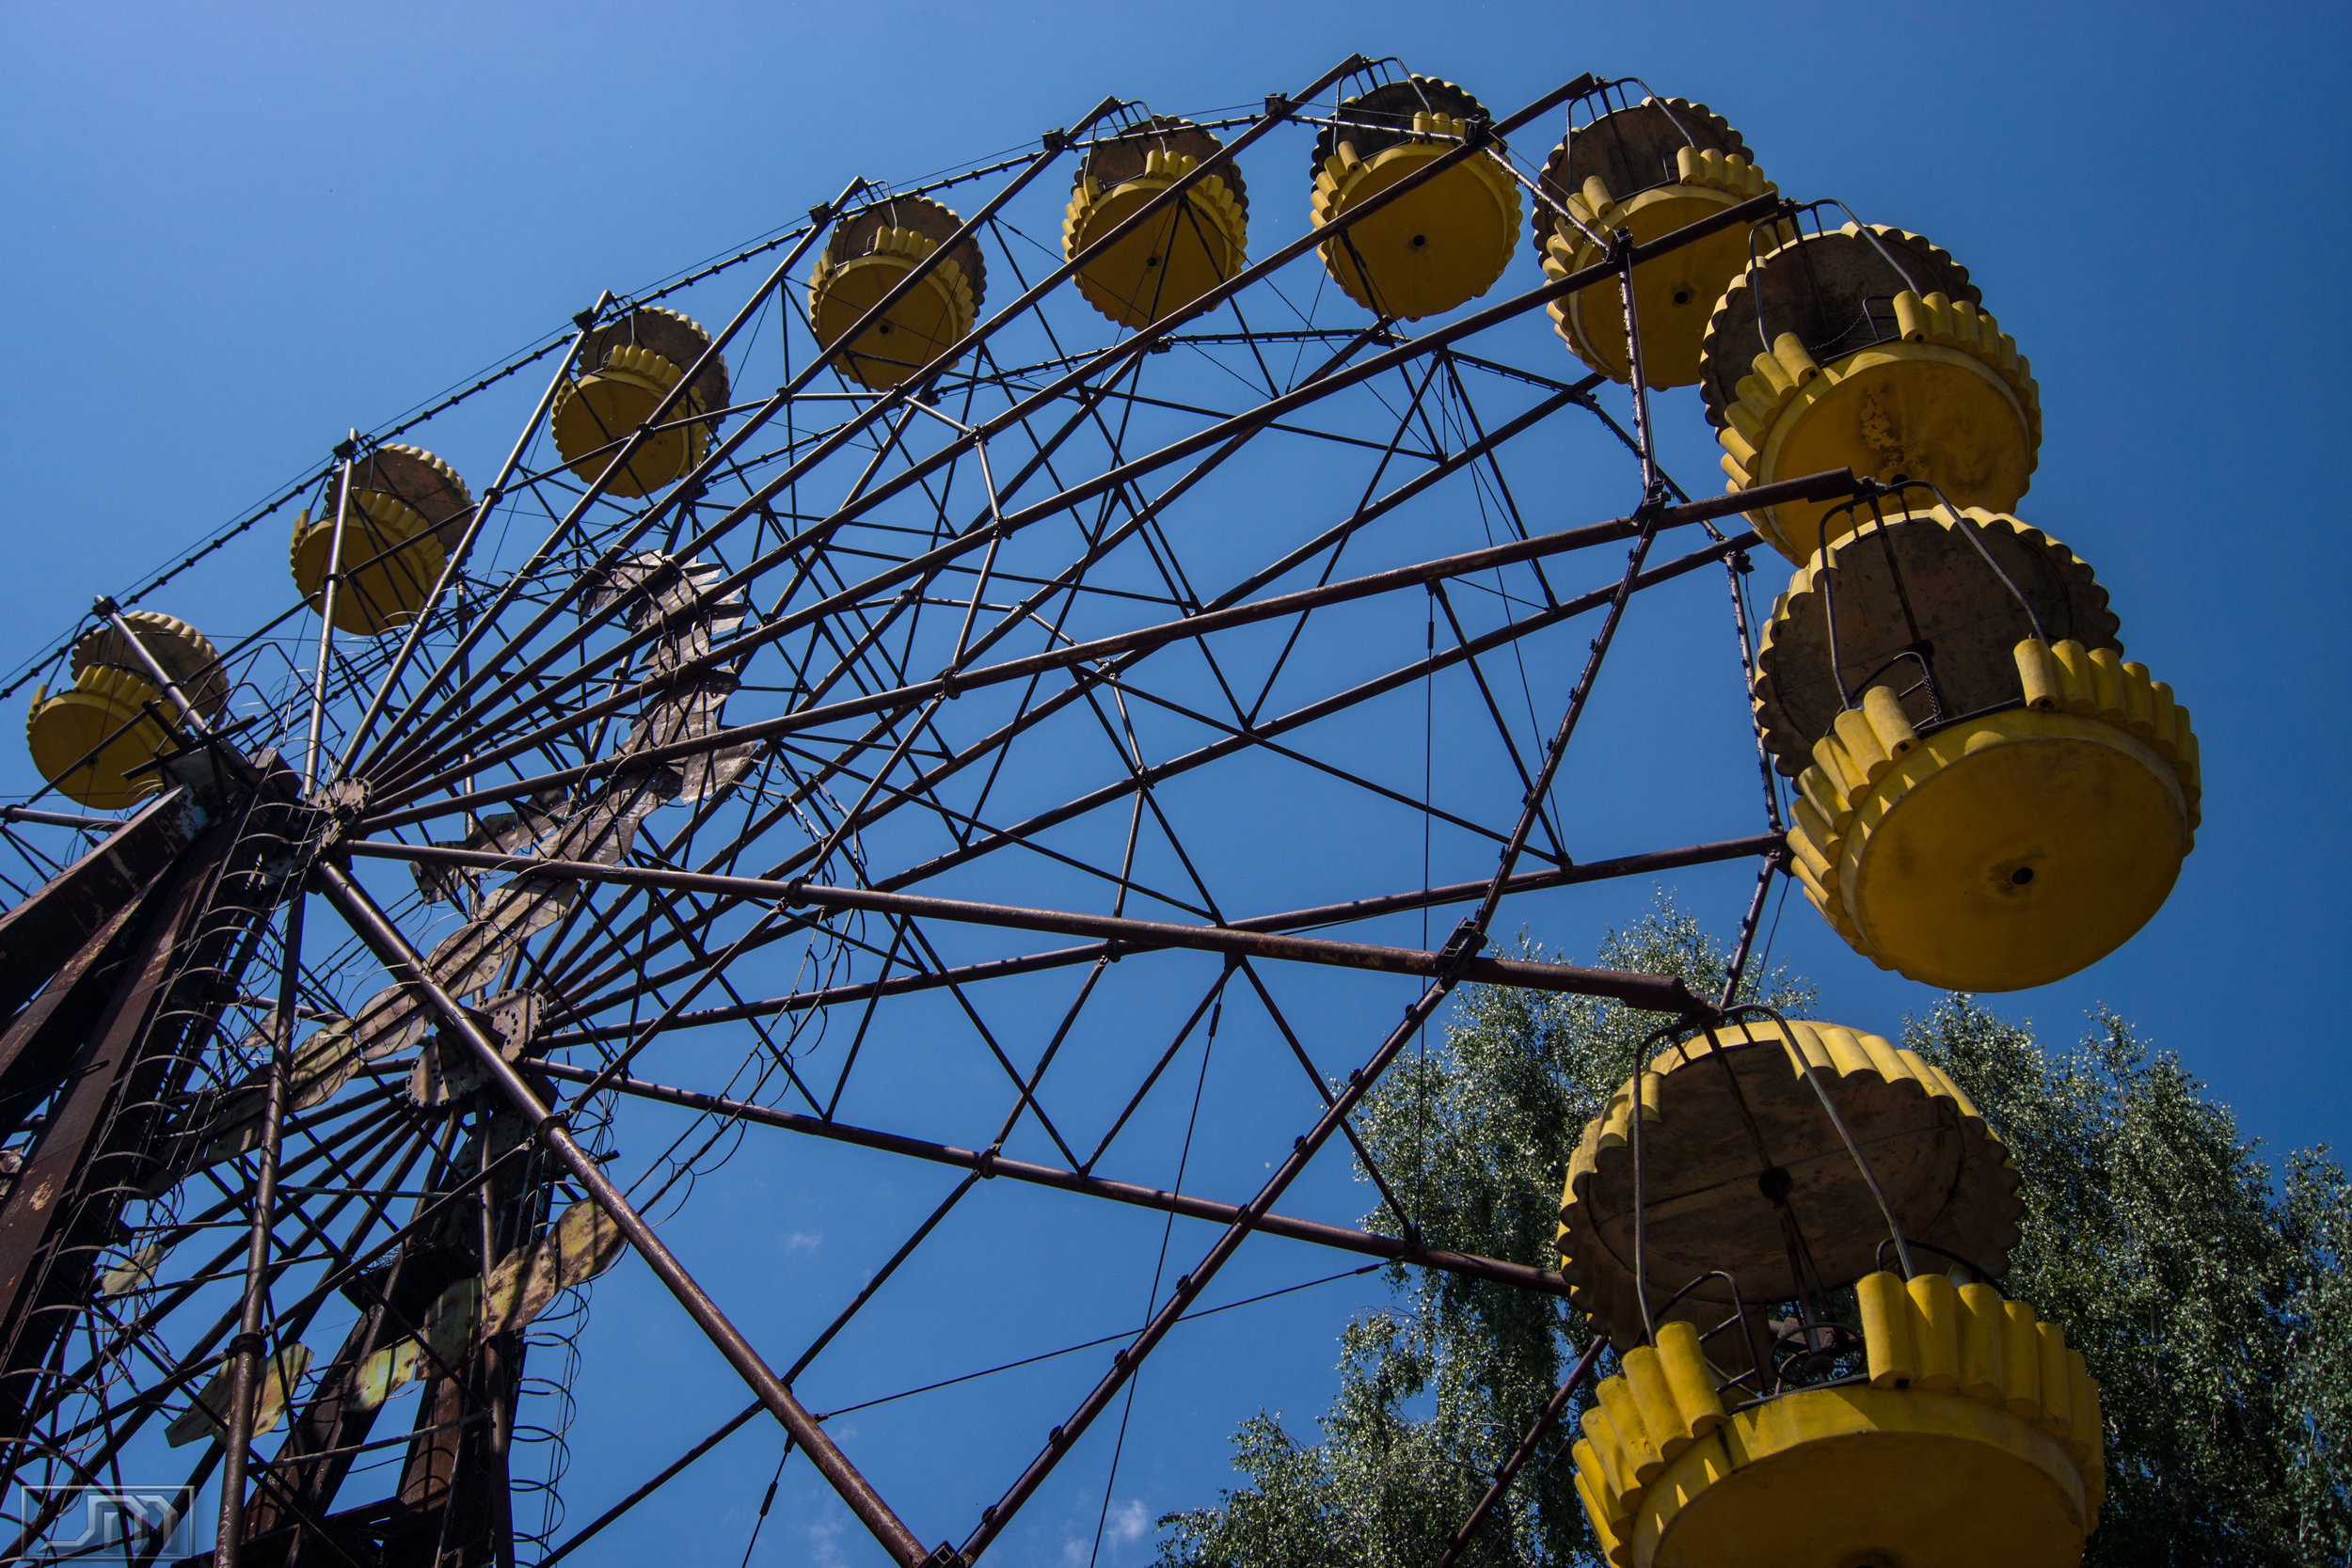 Chernobyl - Ferris Wheel Side 3.jpg